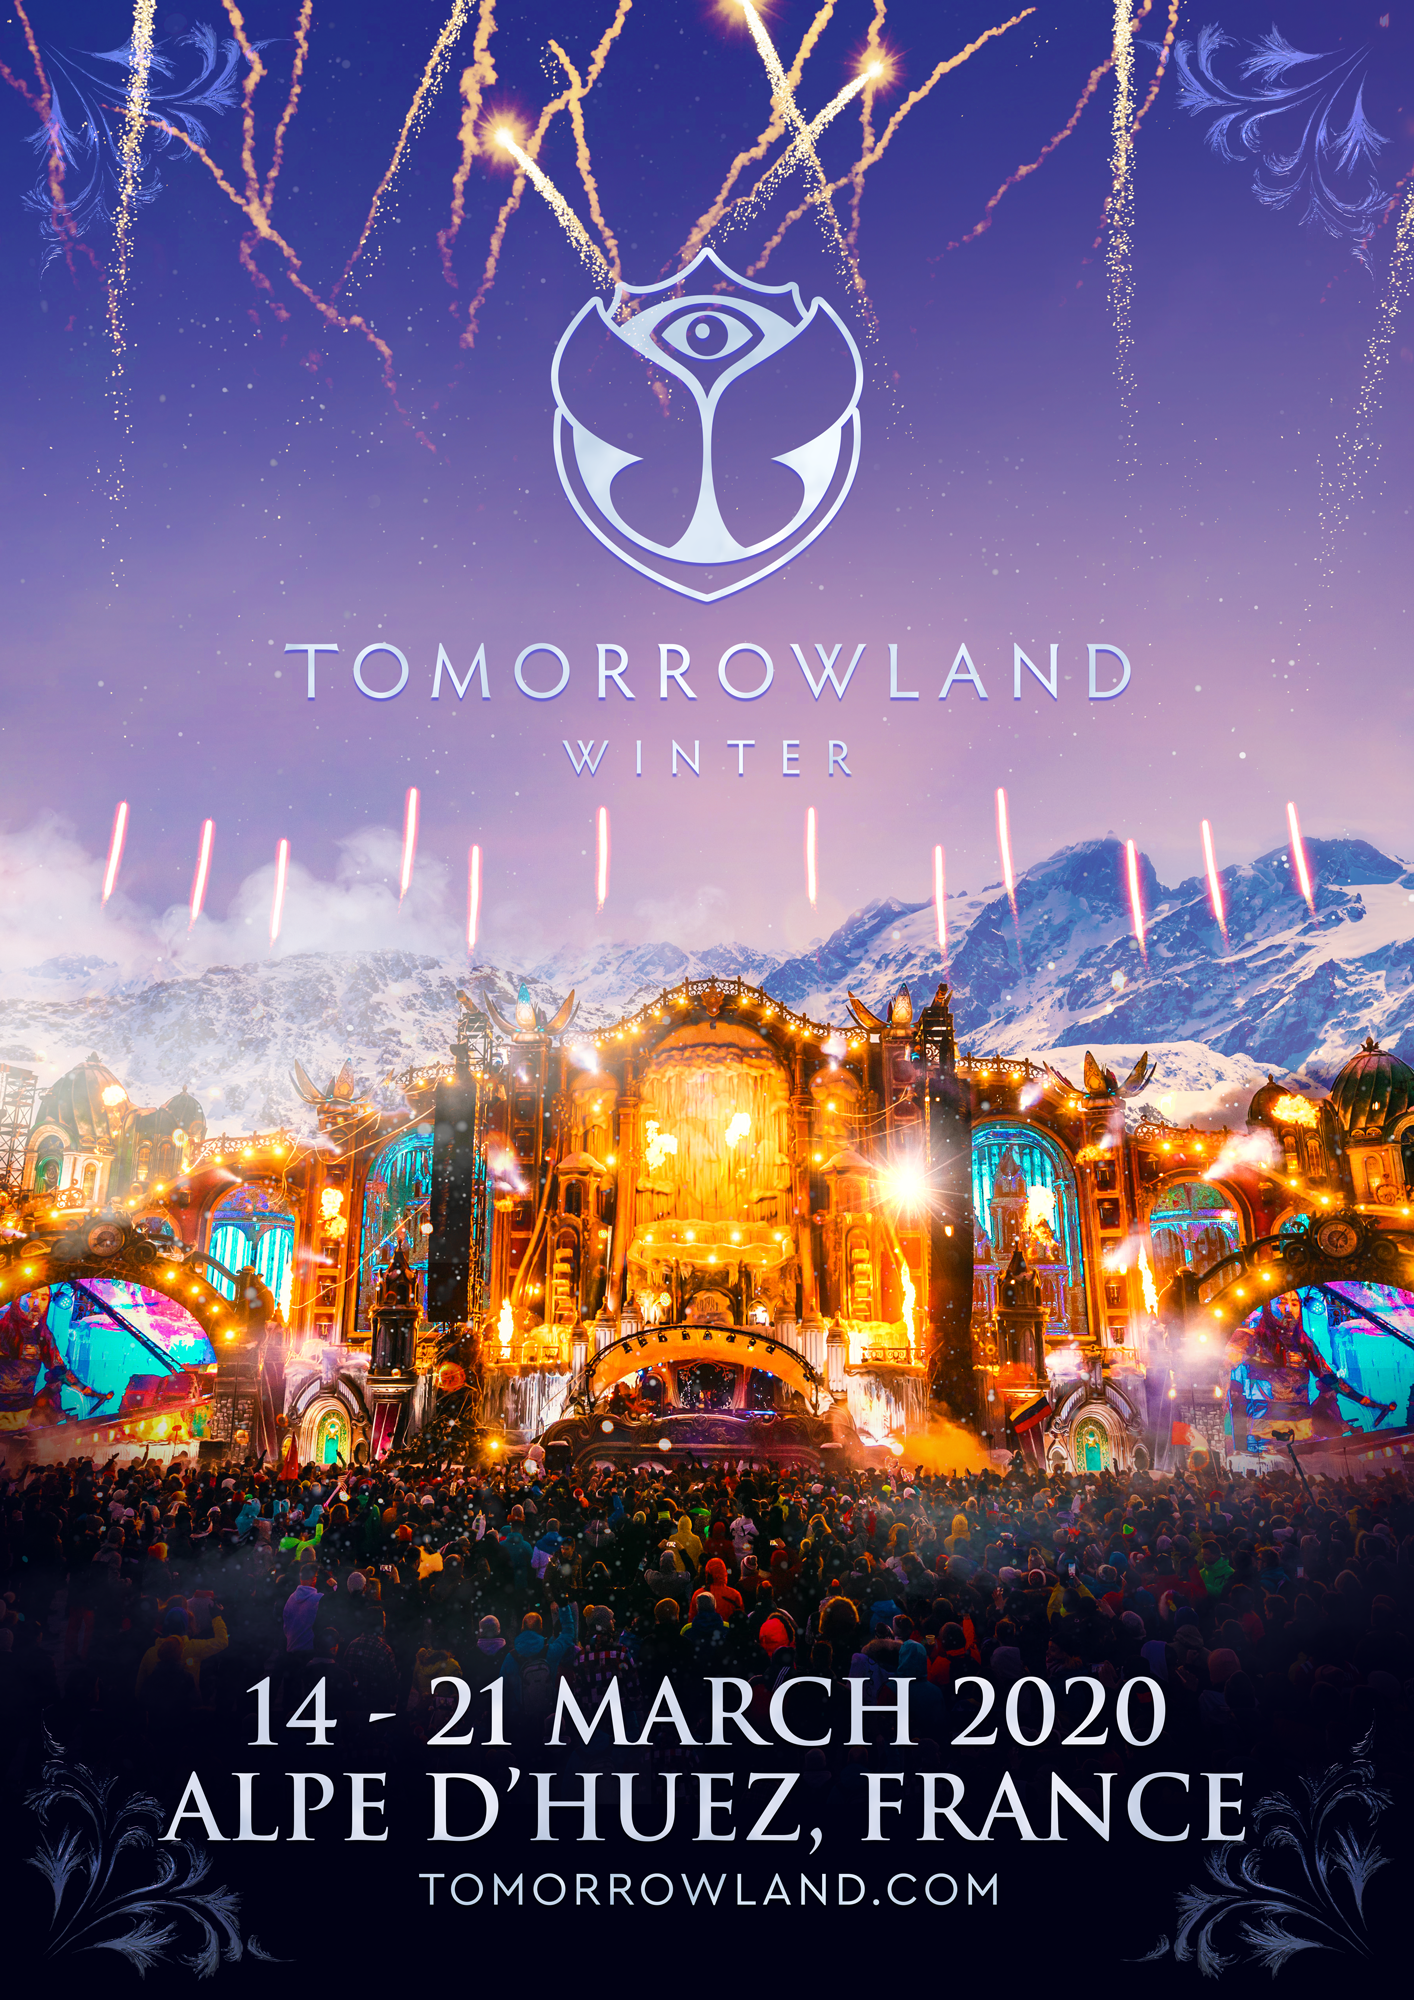 Tomorrowland Winter 2020 Pre-Registration Announced